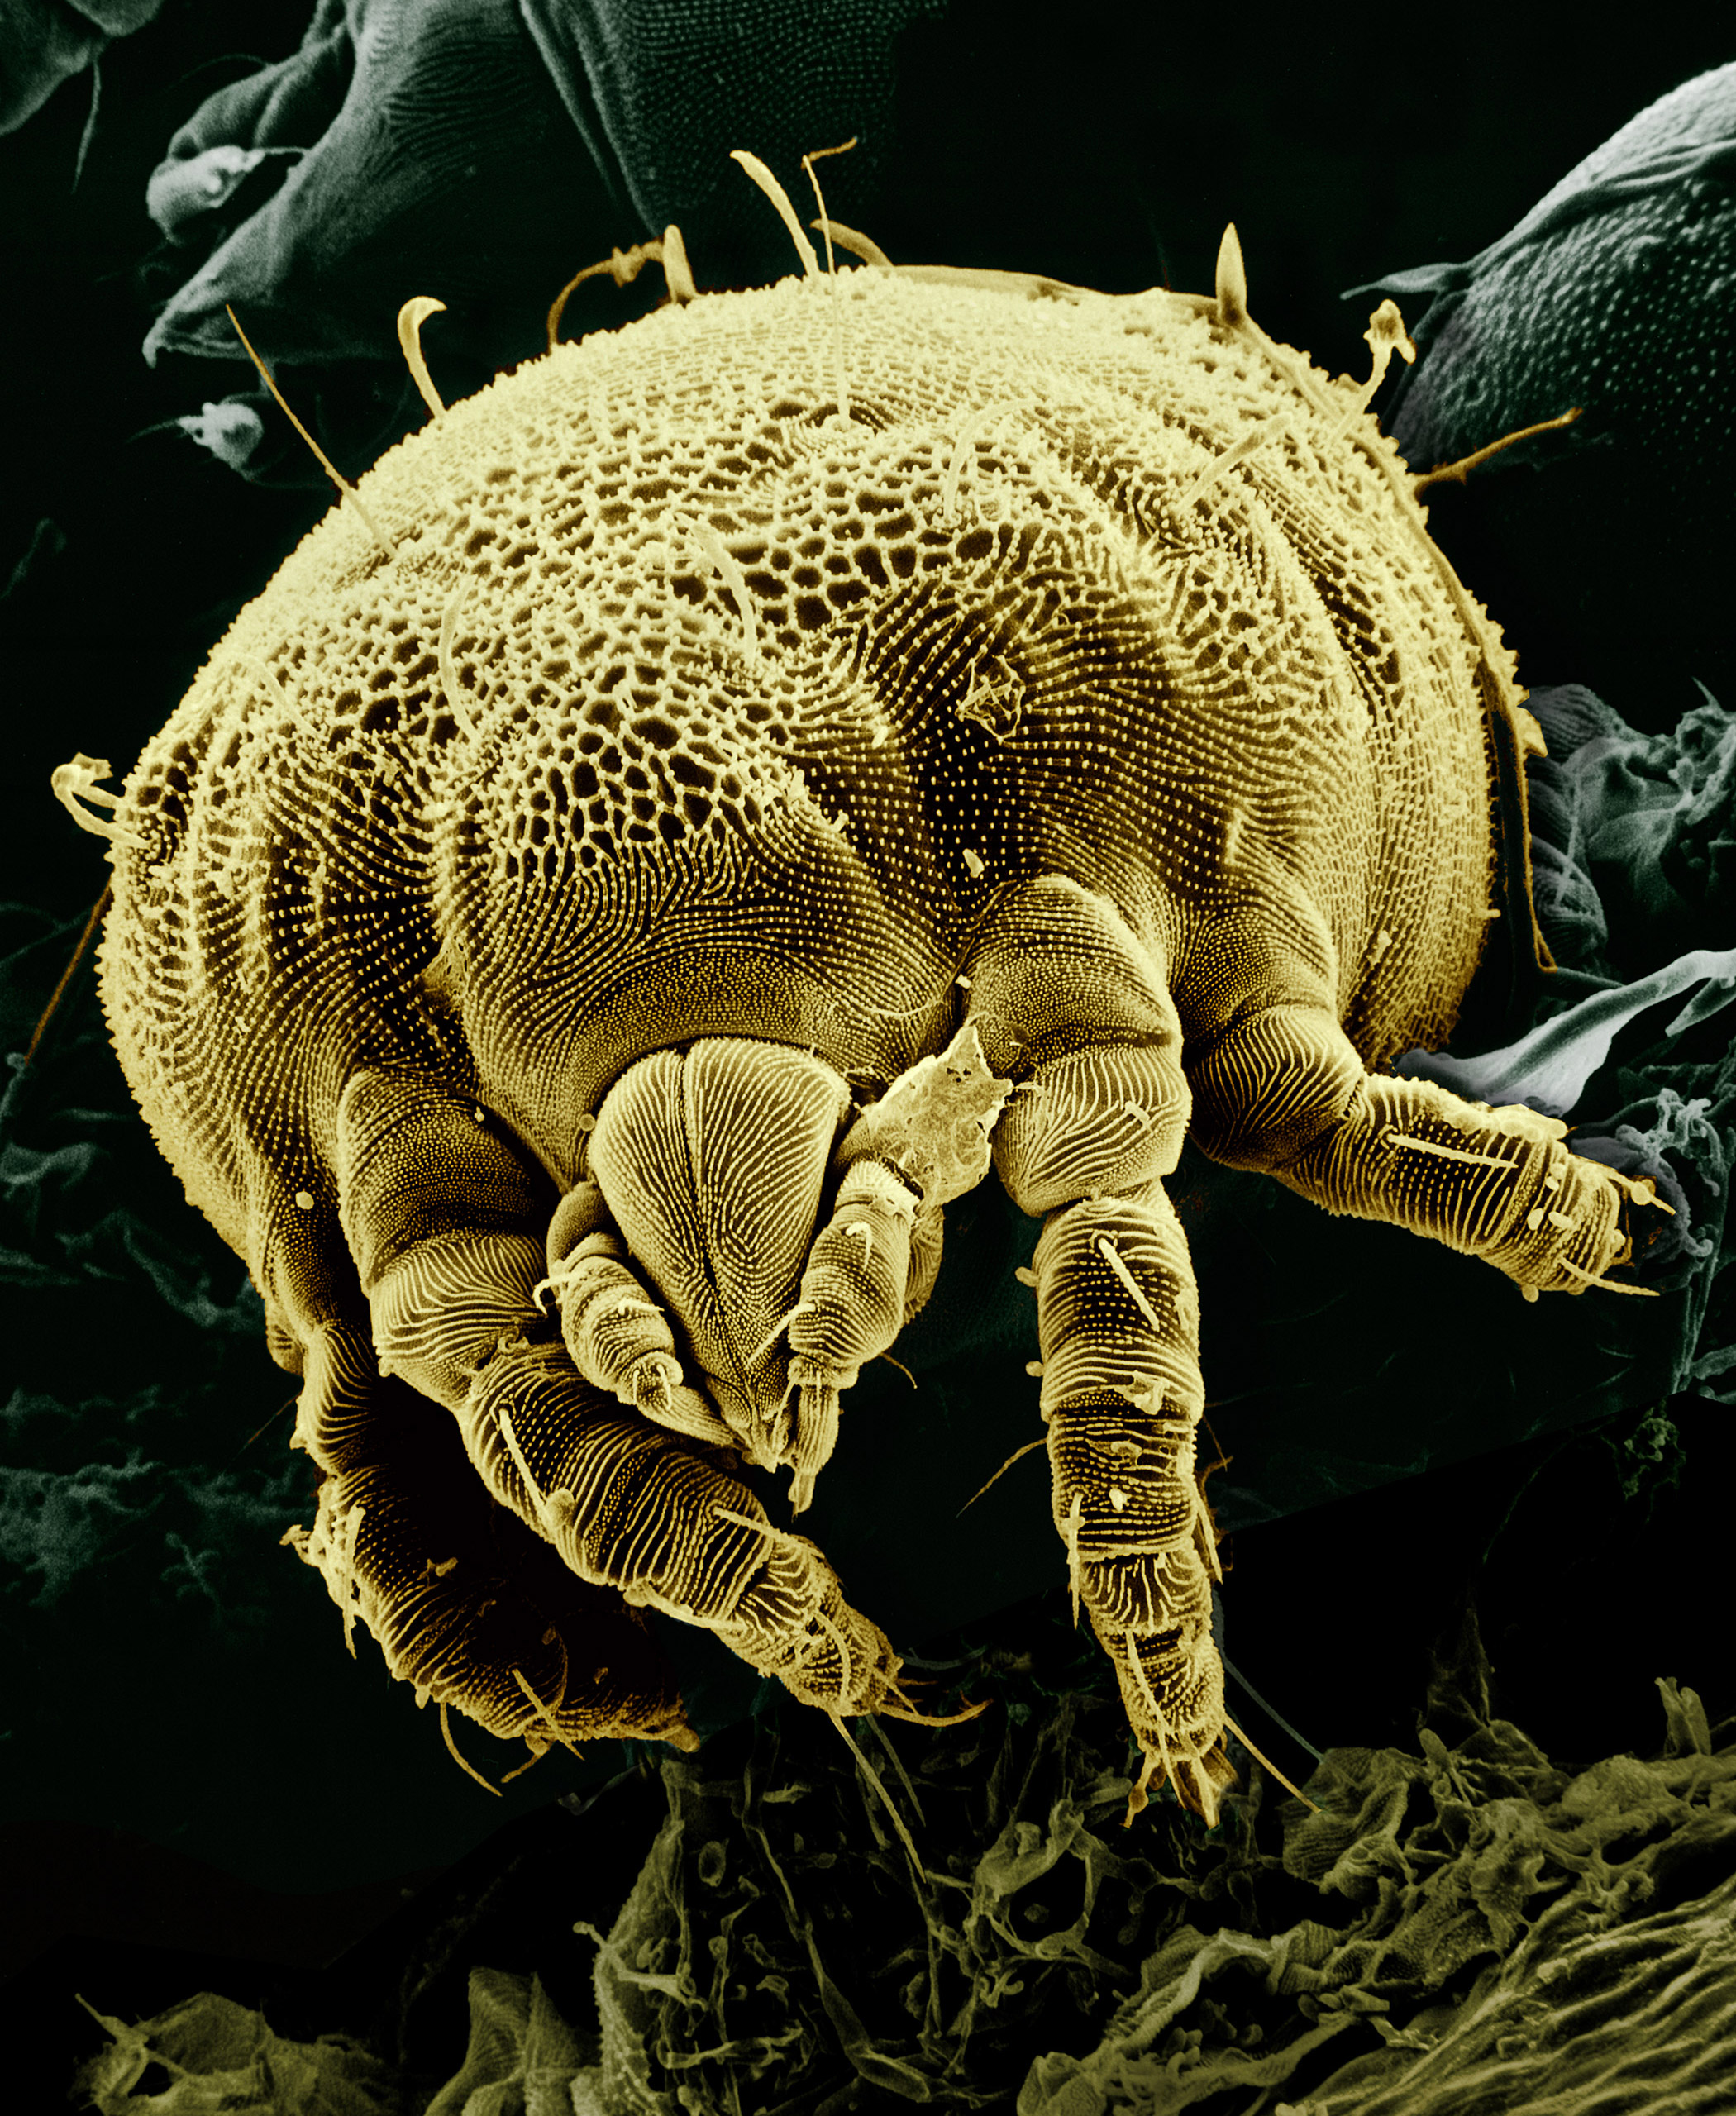 Yellow mite %28Tydeidae%29 Lorryia formosa 2 edit